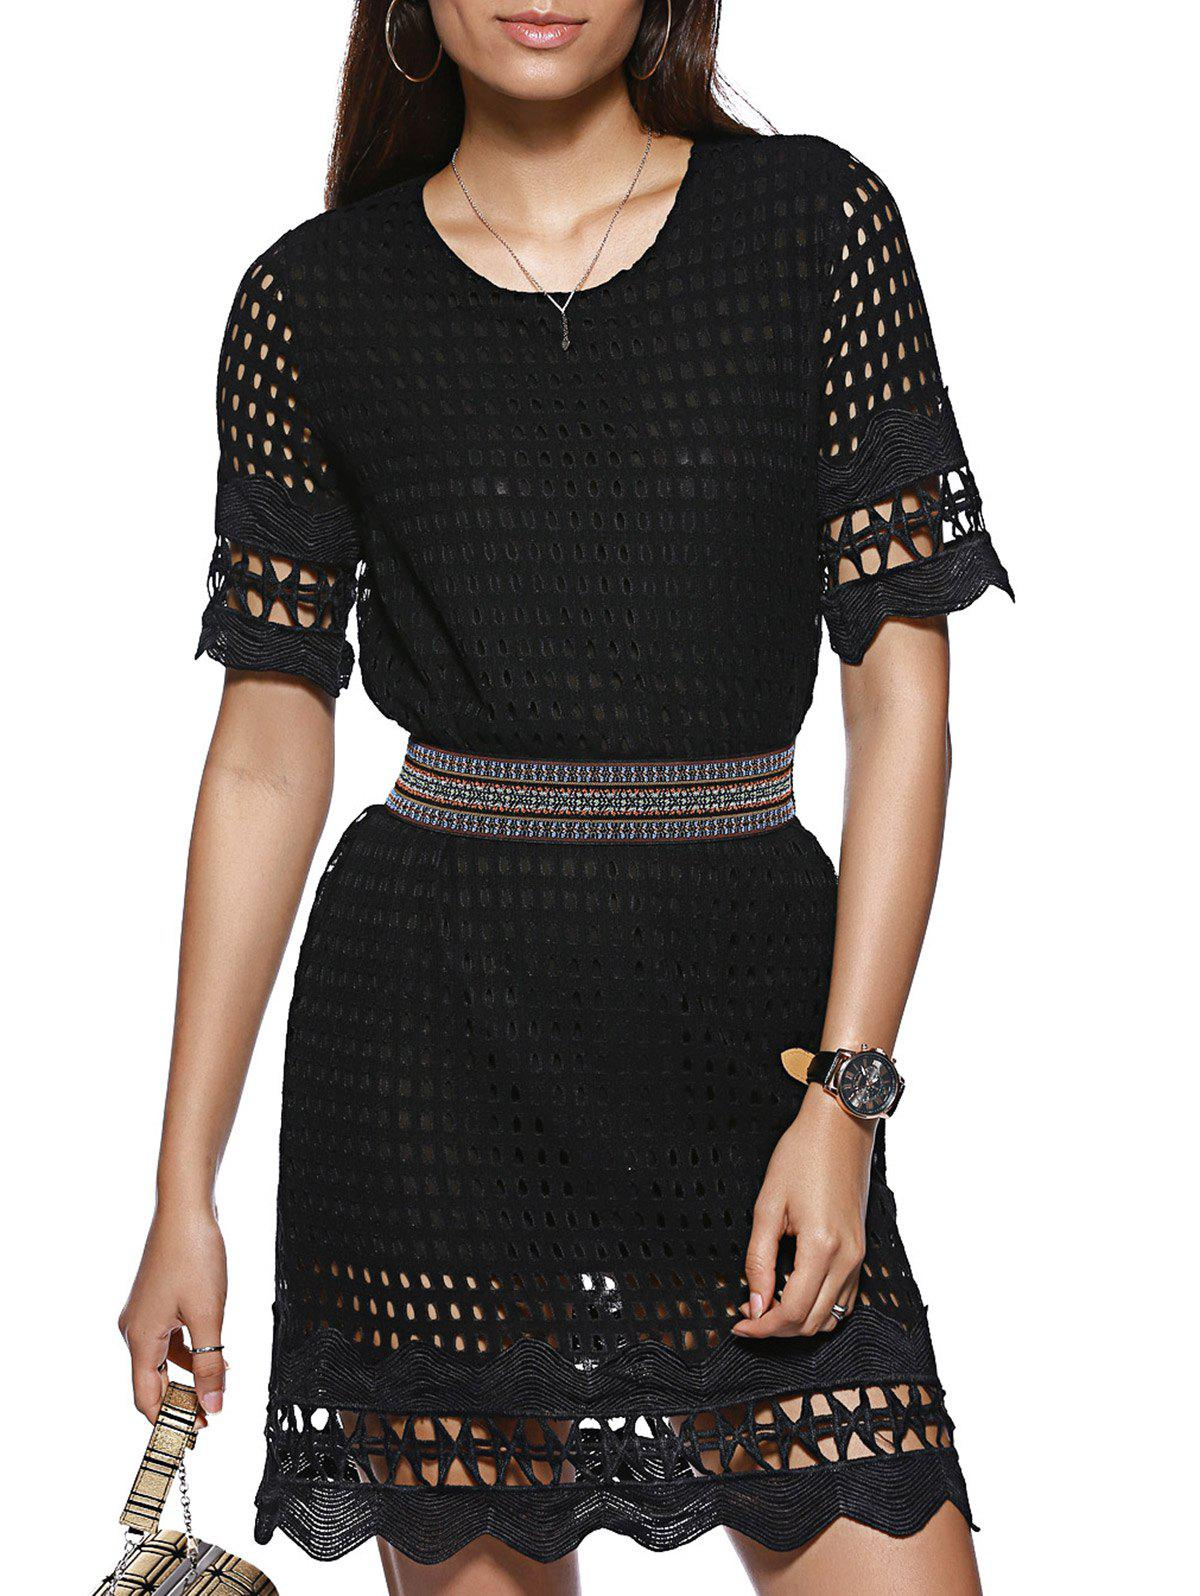 Fashionable Short Sleeve Scoop Collar Black Slimming Hollow Out Women's Dress - BLACK ONE SIZE(FIT SIZE XS TO M)